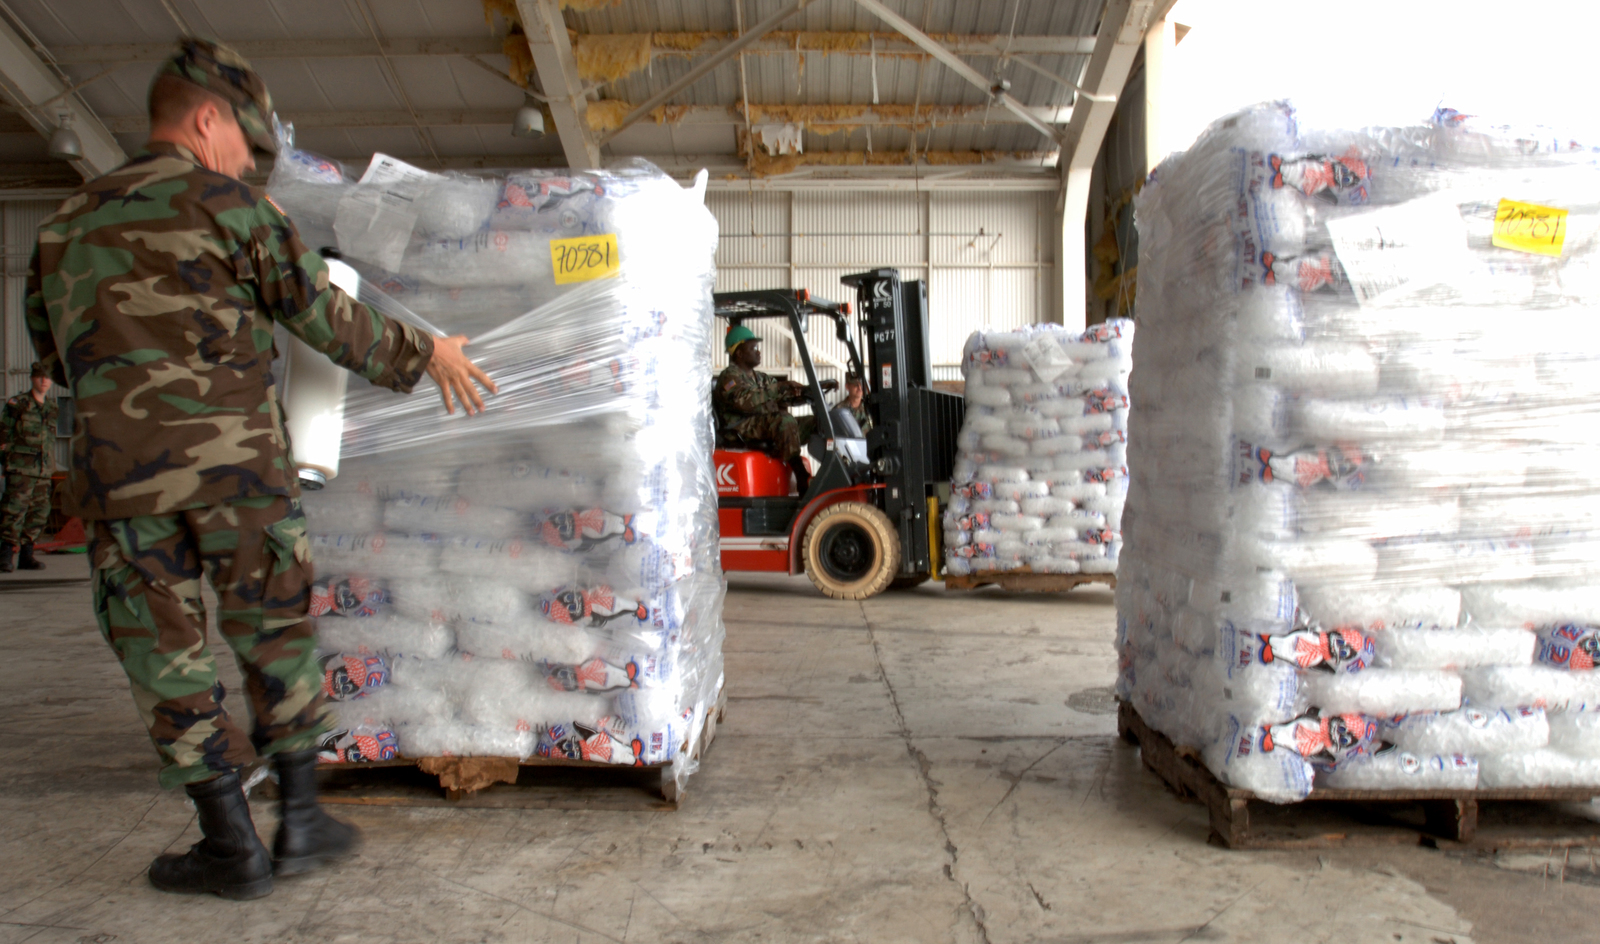 [Hurricane Wilma] Homestead, FL, October 30, 2005 -- National Guardsman, Steven Laughlin of Ocala,  wraps pallets of ice in a hanger at the Air Force Base which is being used as a staging area for both water and ice distribution for areas impacted by Hurricane Wilma.  Jocelyn Augusitno/FEMA